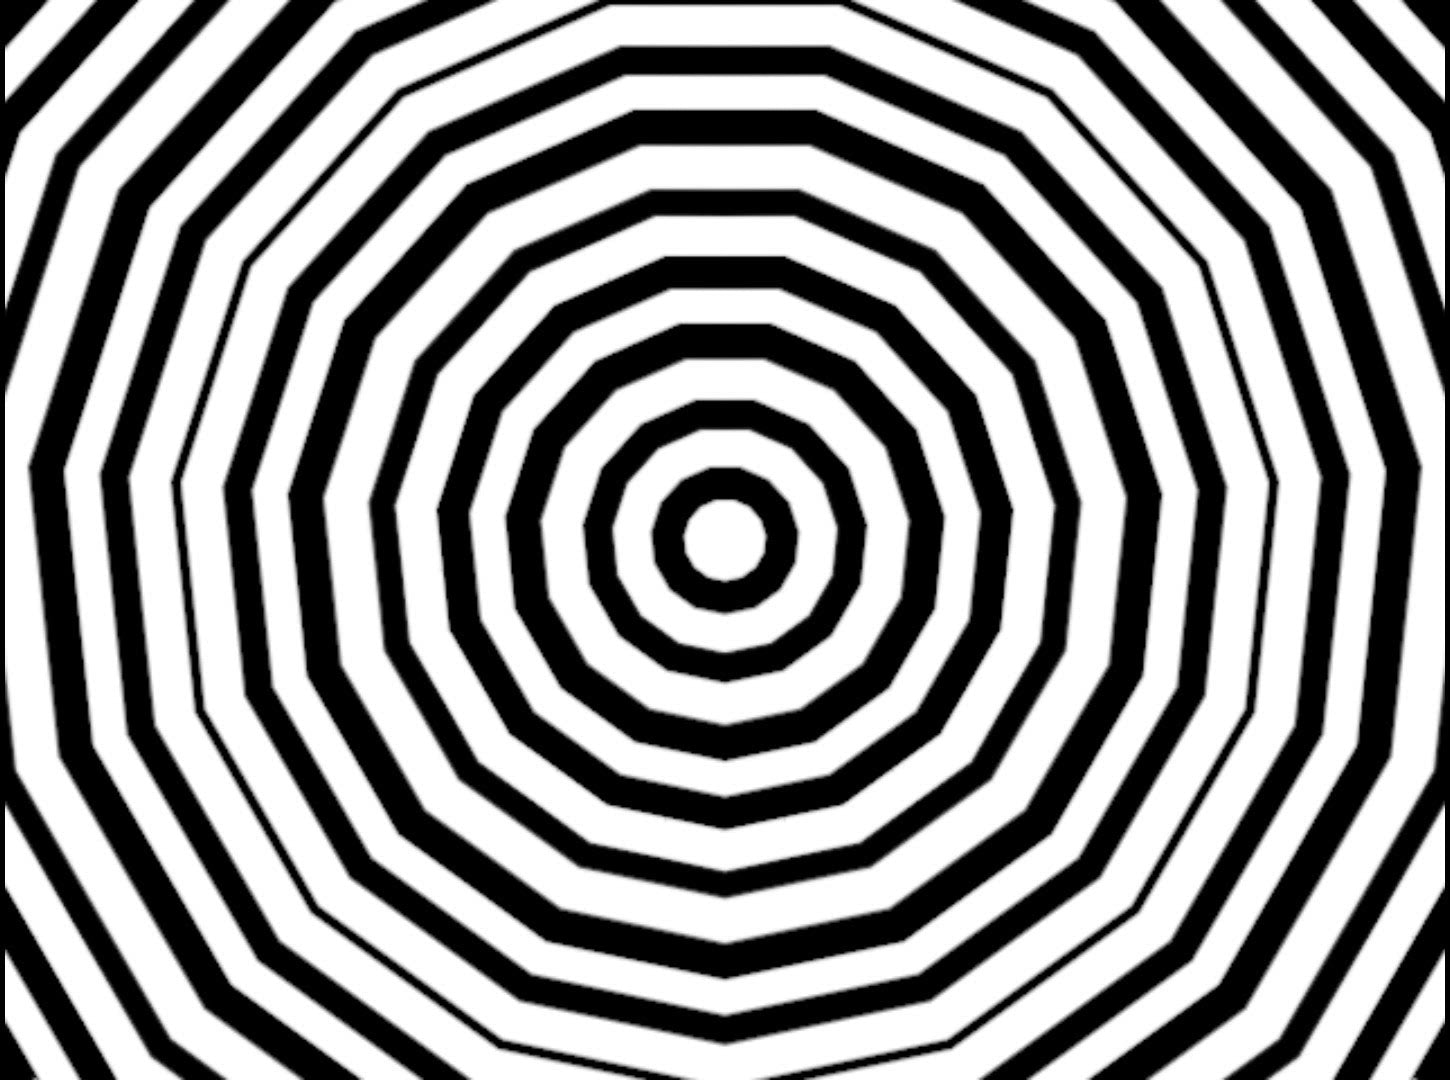 Royalty Free Video VJ Loops: B&W Throbbing Concentric Rings